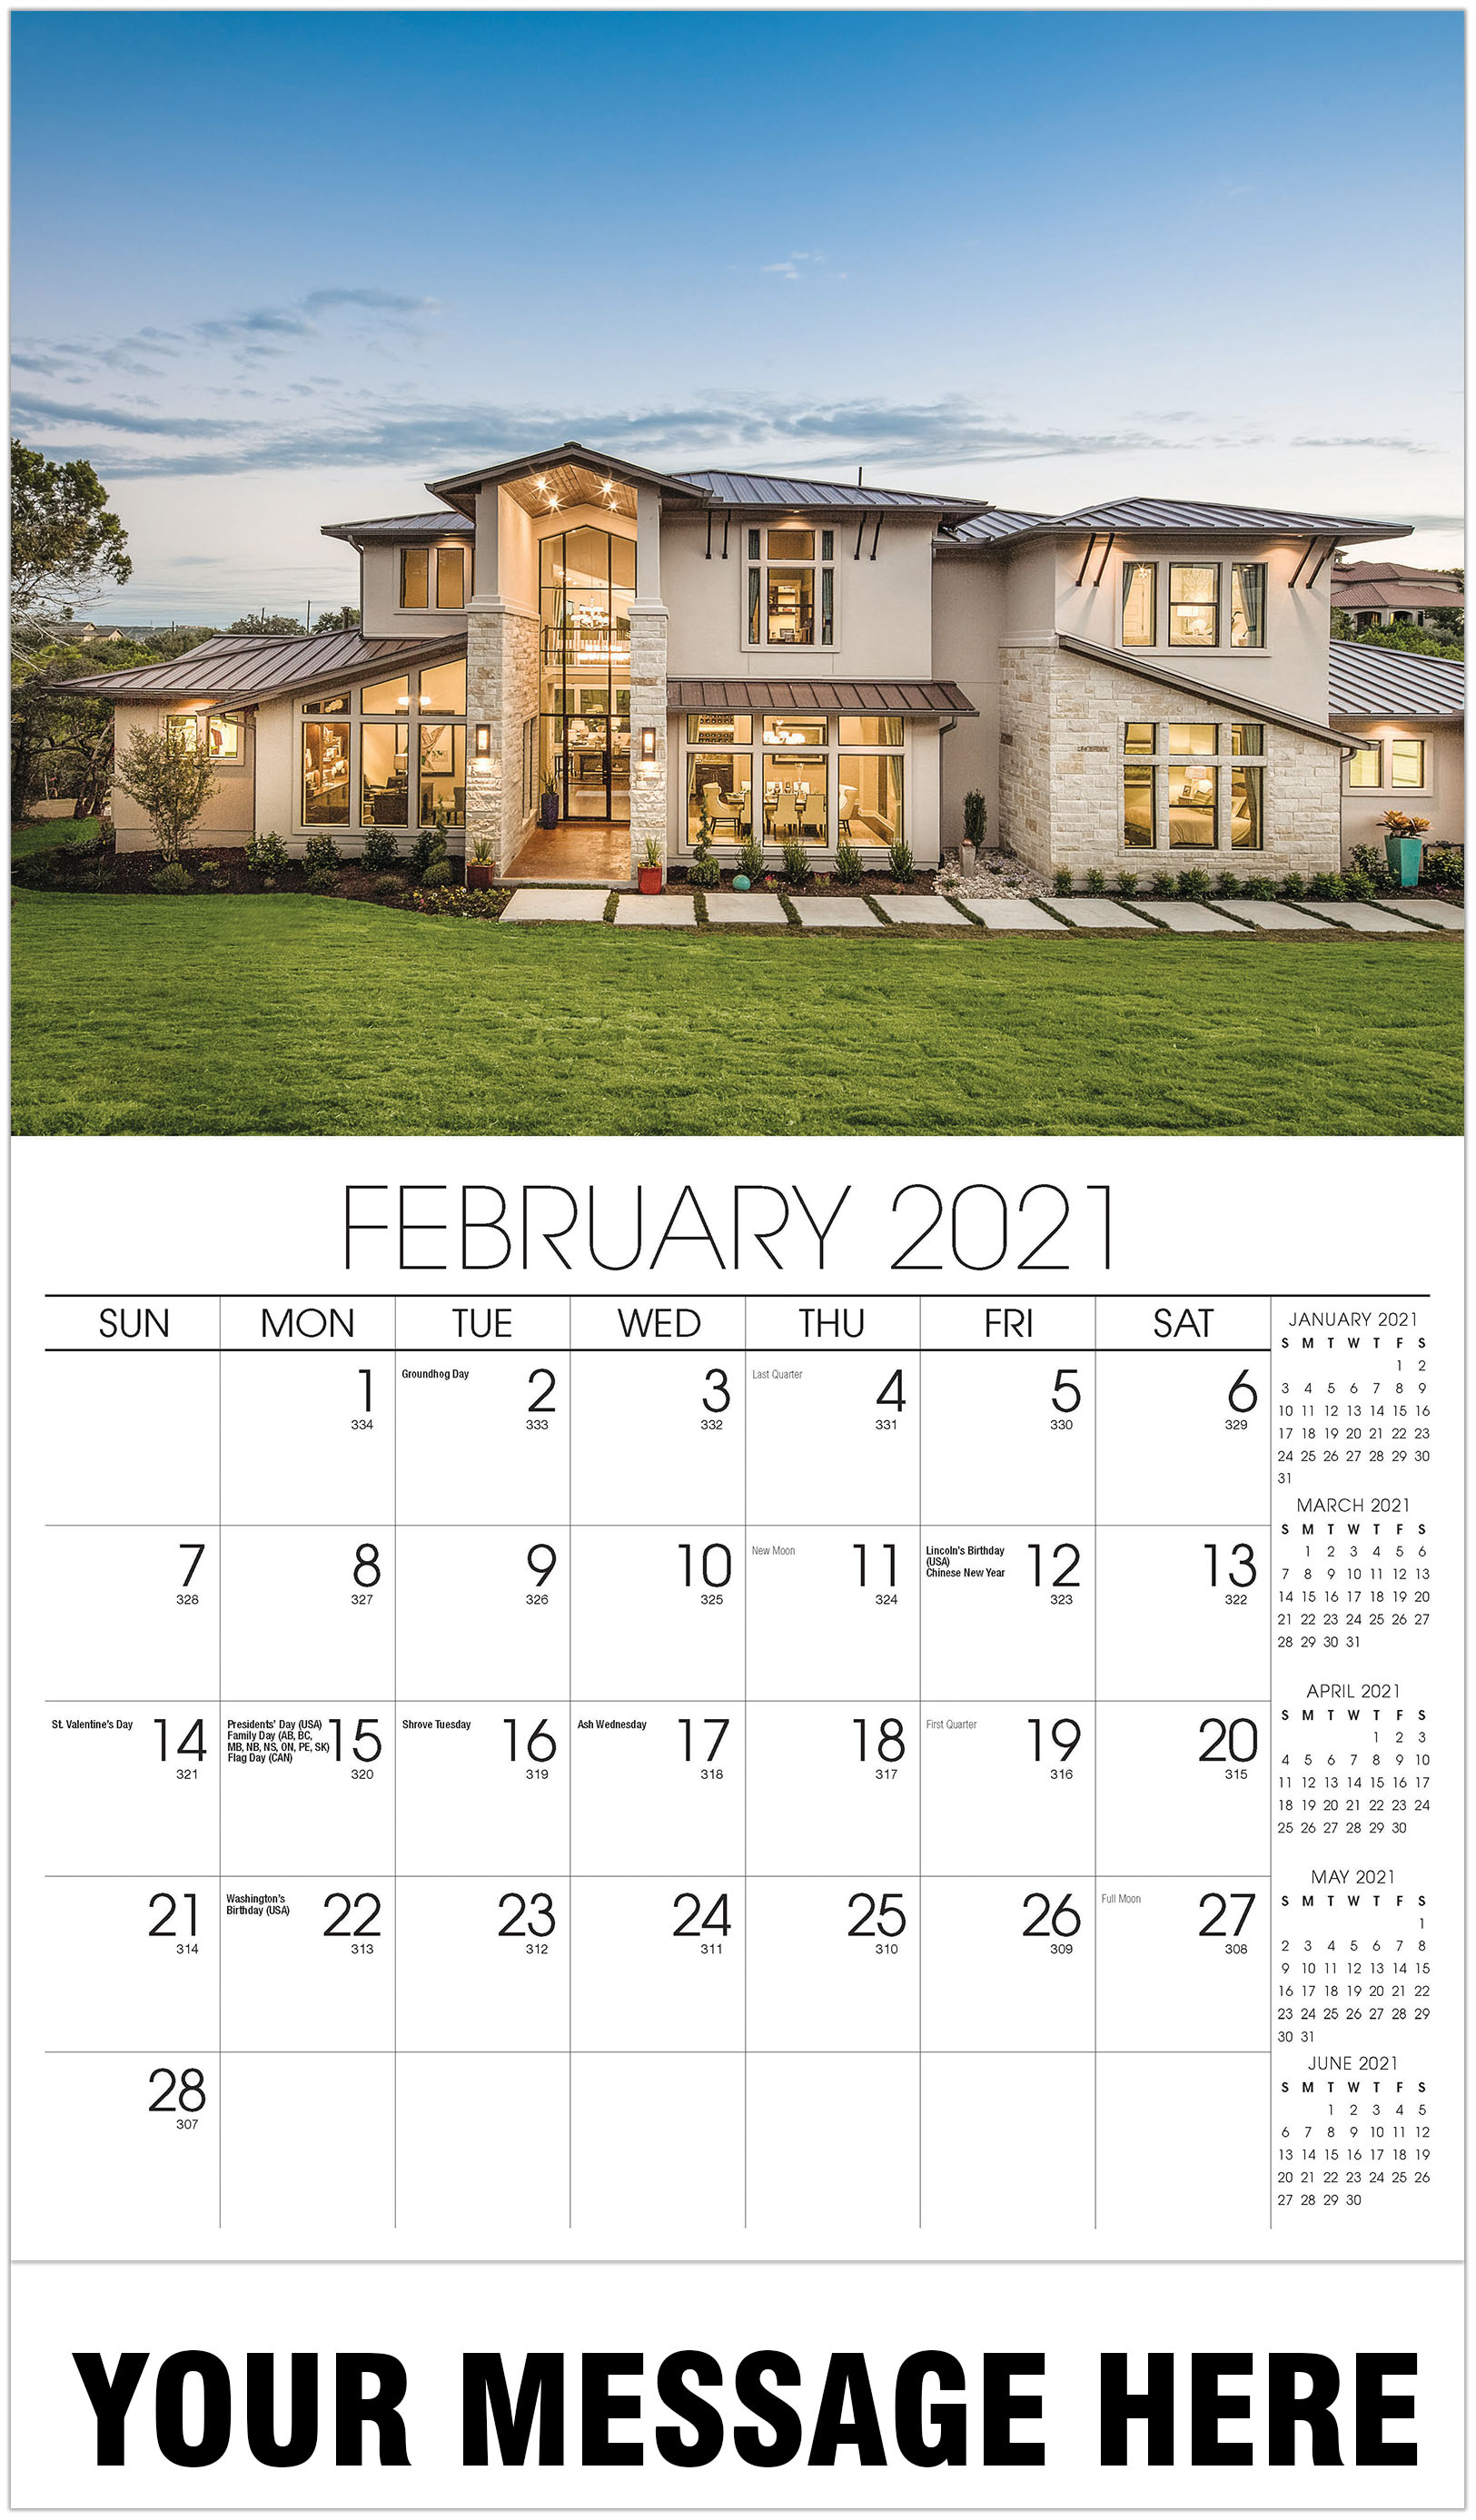 Luxury Homes Calendar - February - Homes 2021 Promotional Calendar